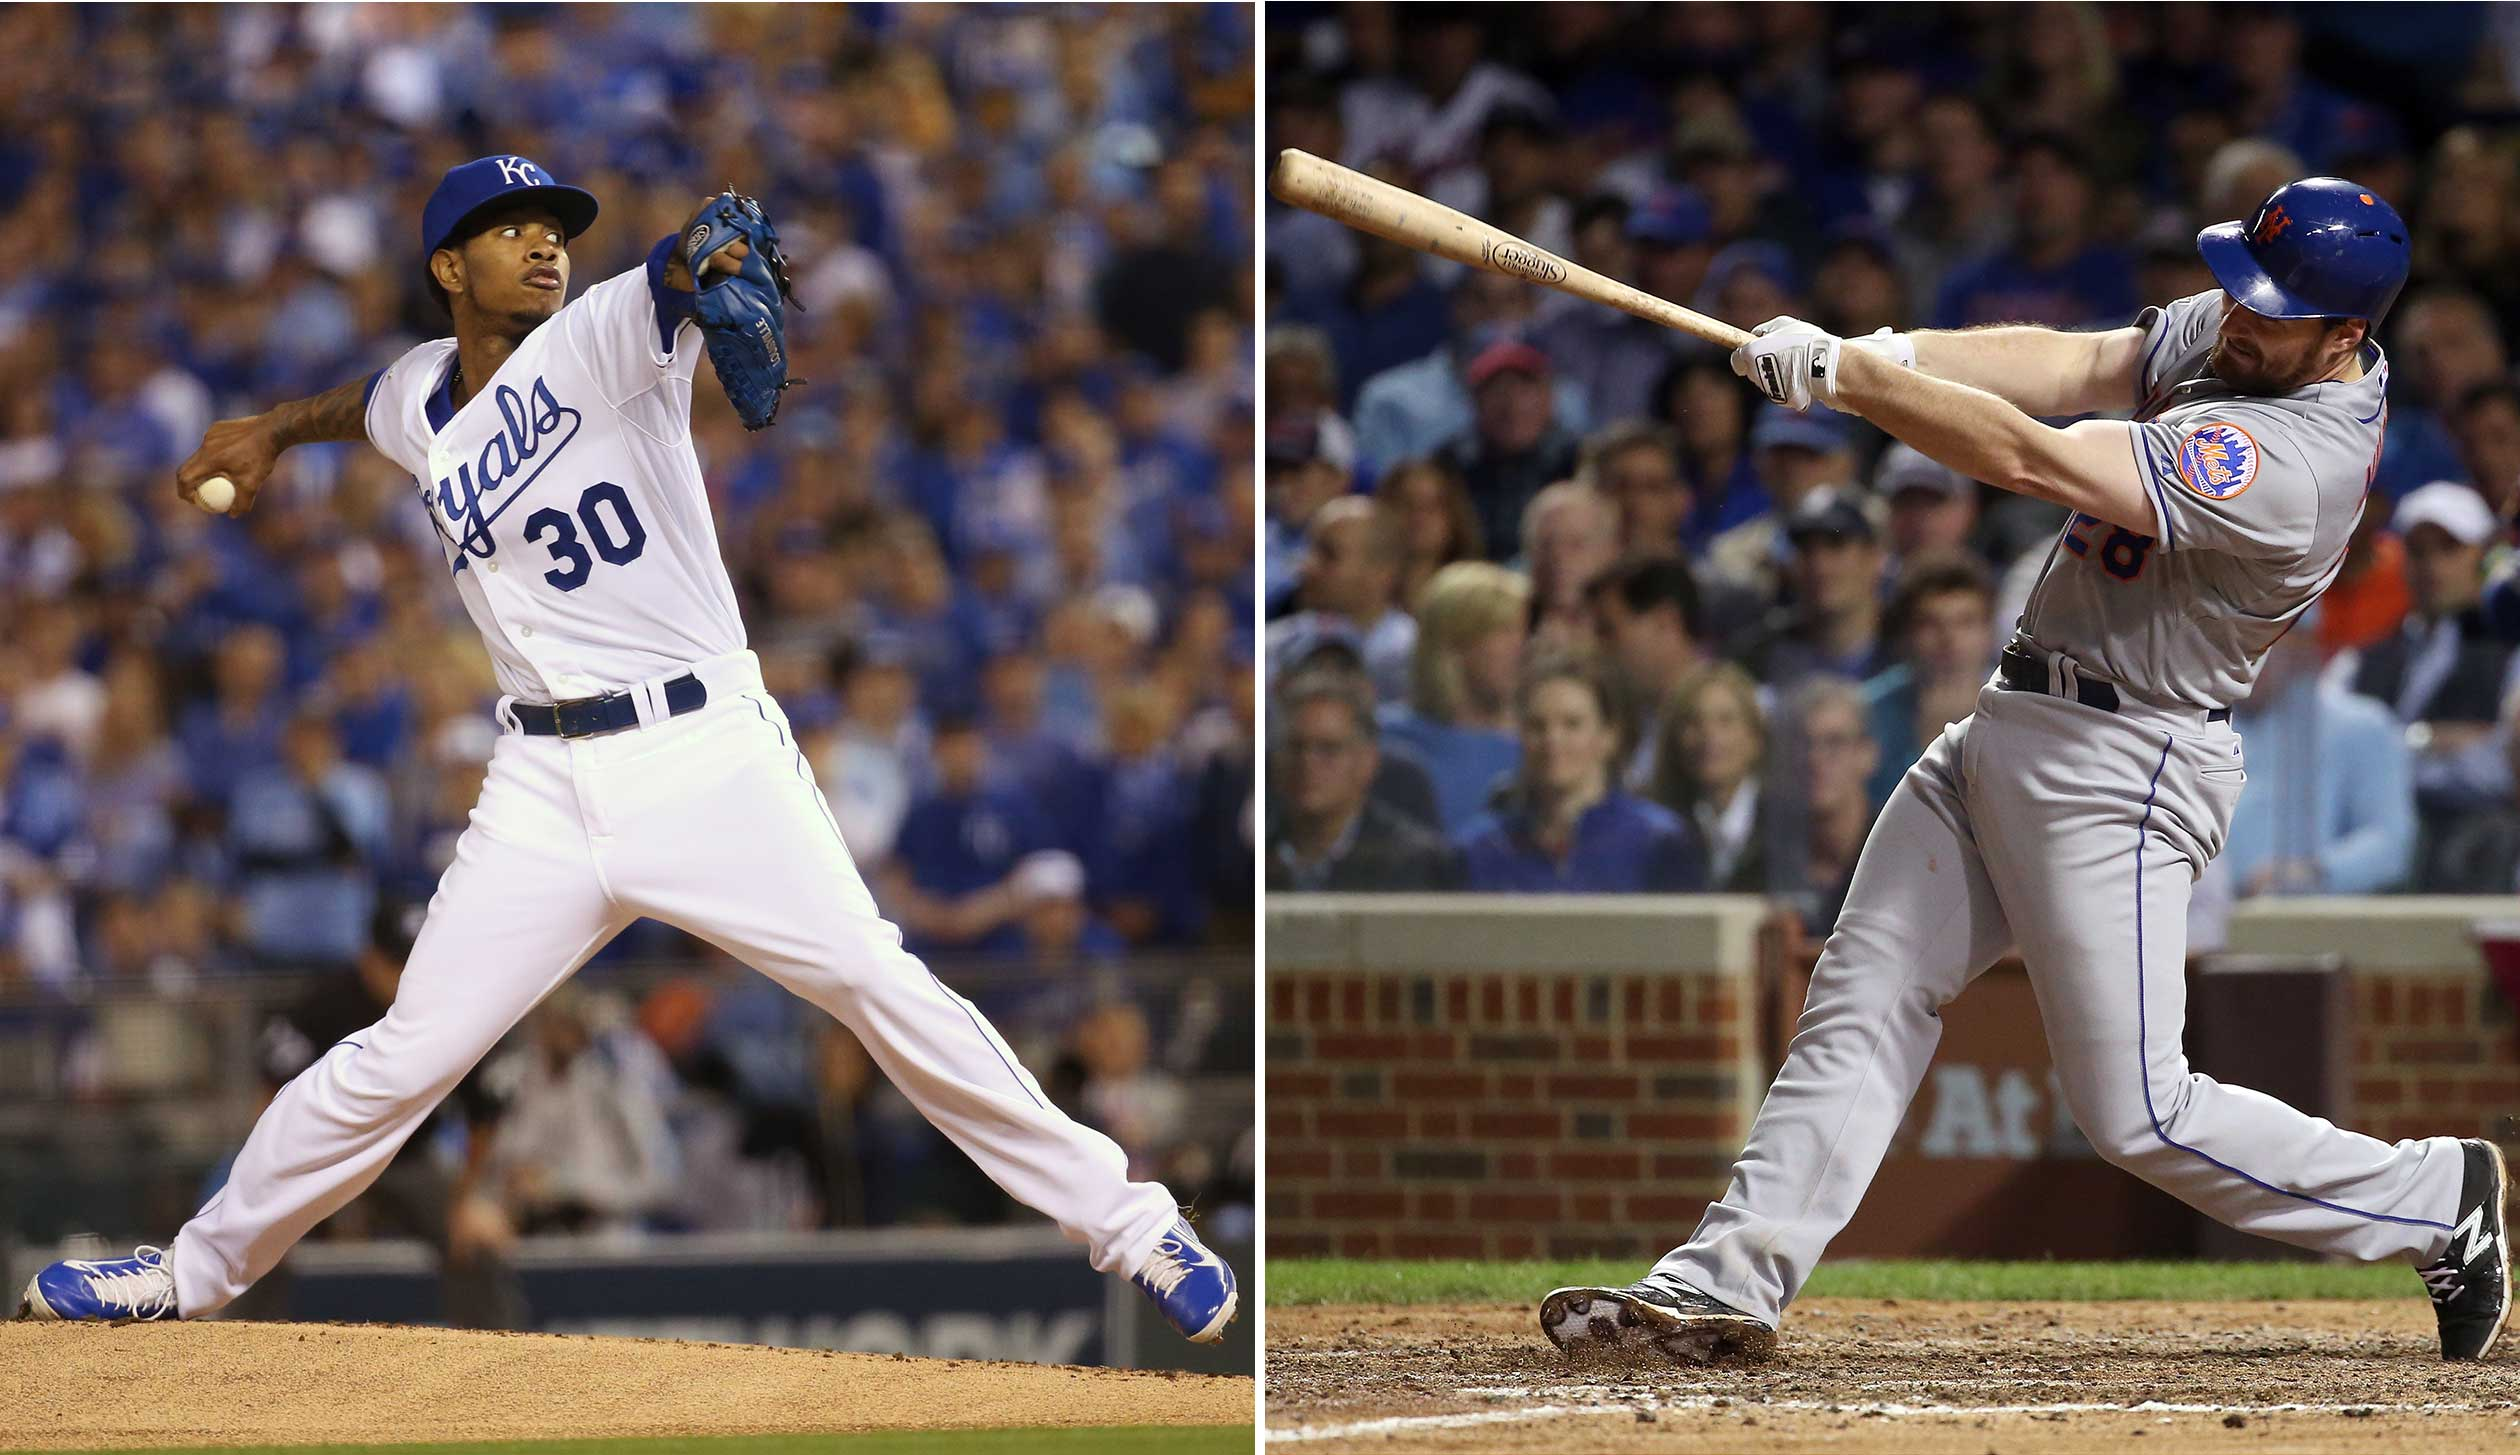 Kansas City Royals starting pitcher Yordano Ventura, left, during a 2015 ALCS game against the Toronto Blue Jays, and Daniel Murphy of the New York Mets during an NLCS game against the Chicago Cubs.